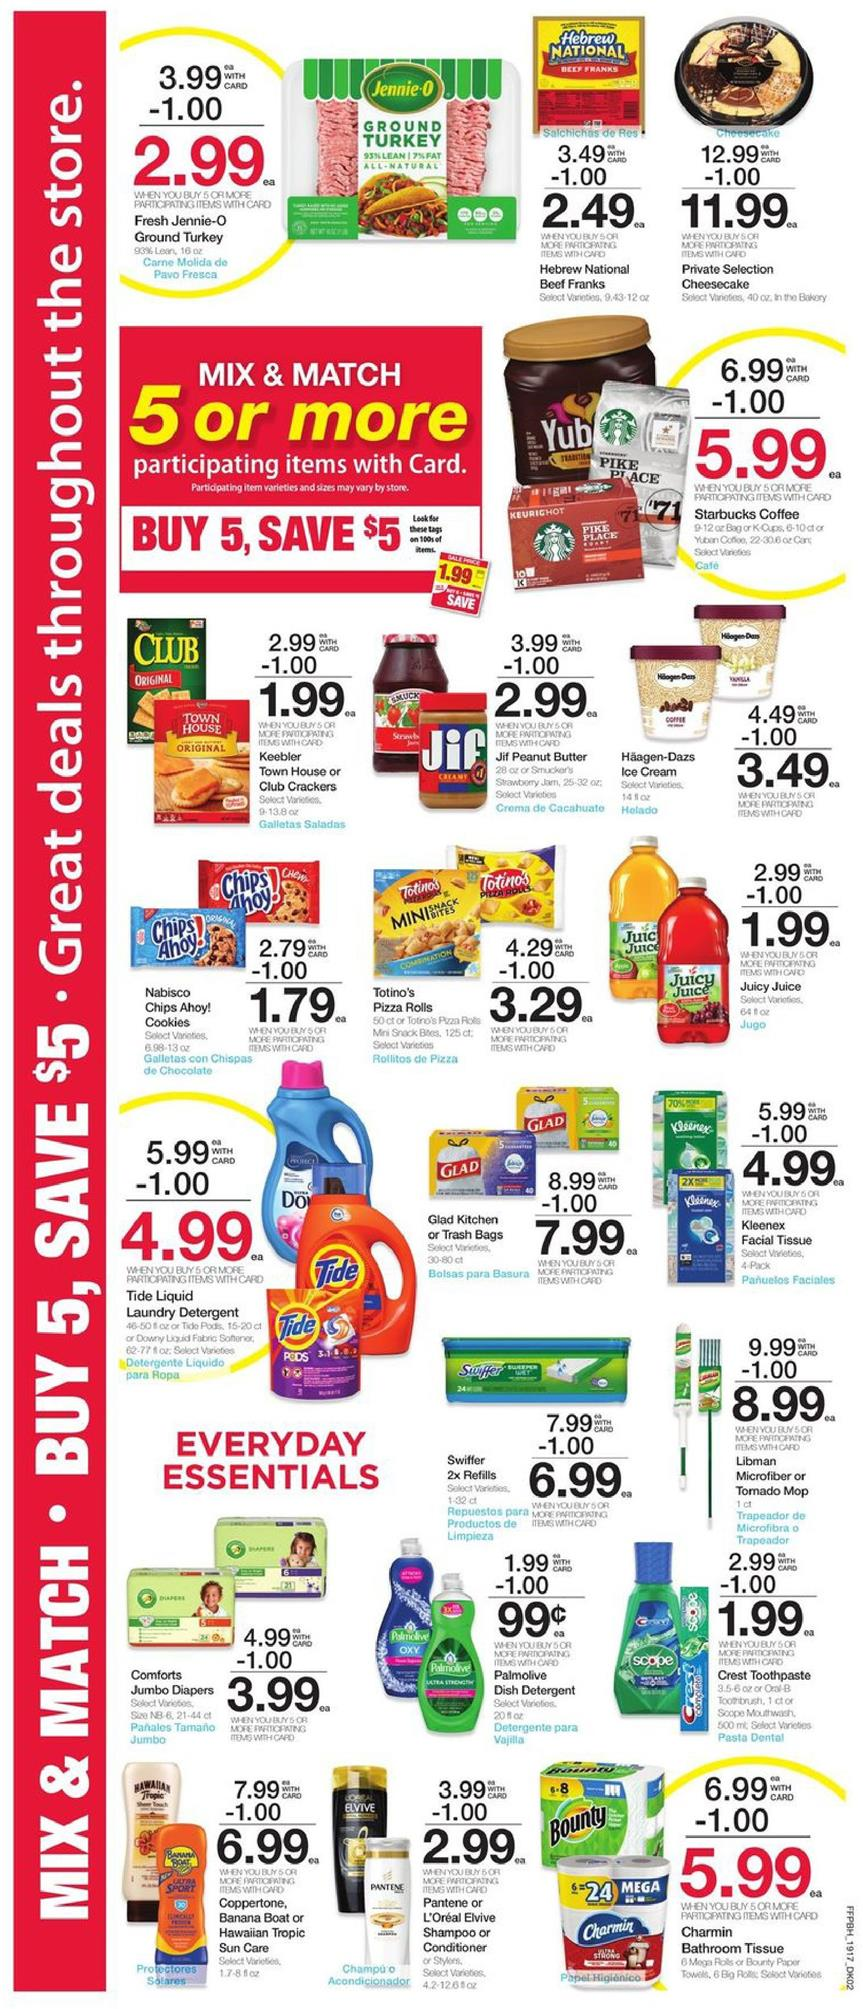 Fry S Weekly Ad May 29 Jun 4 2019 Page 6